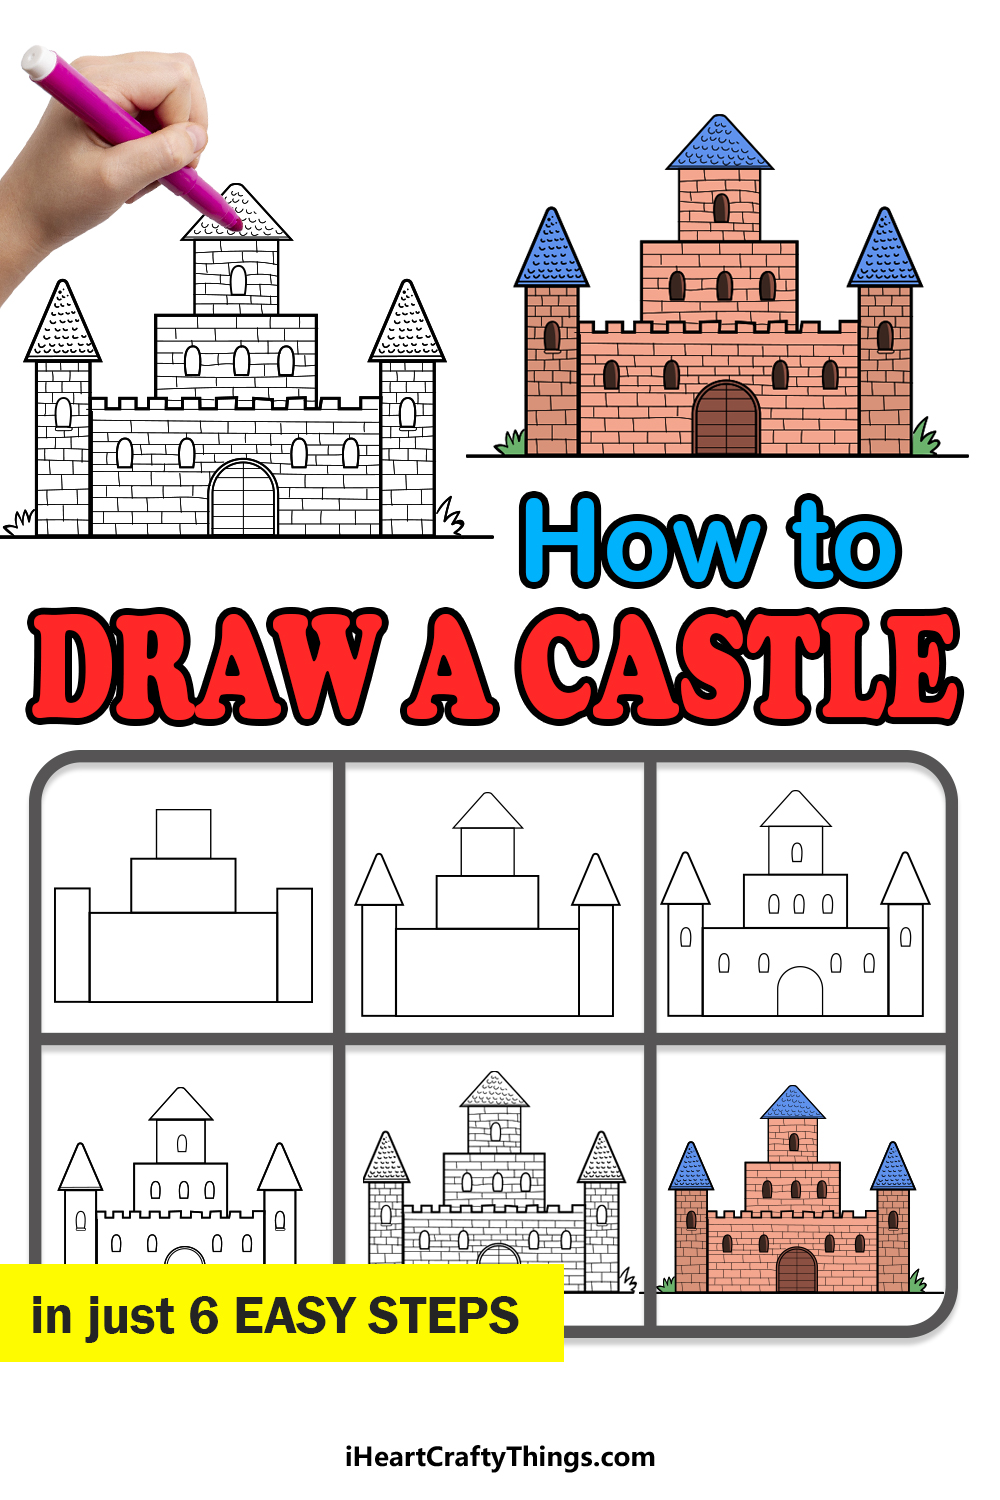 how to draw a castle in 6 easy steps